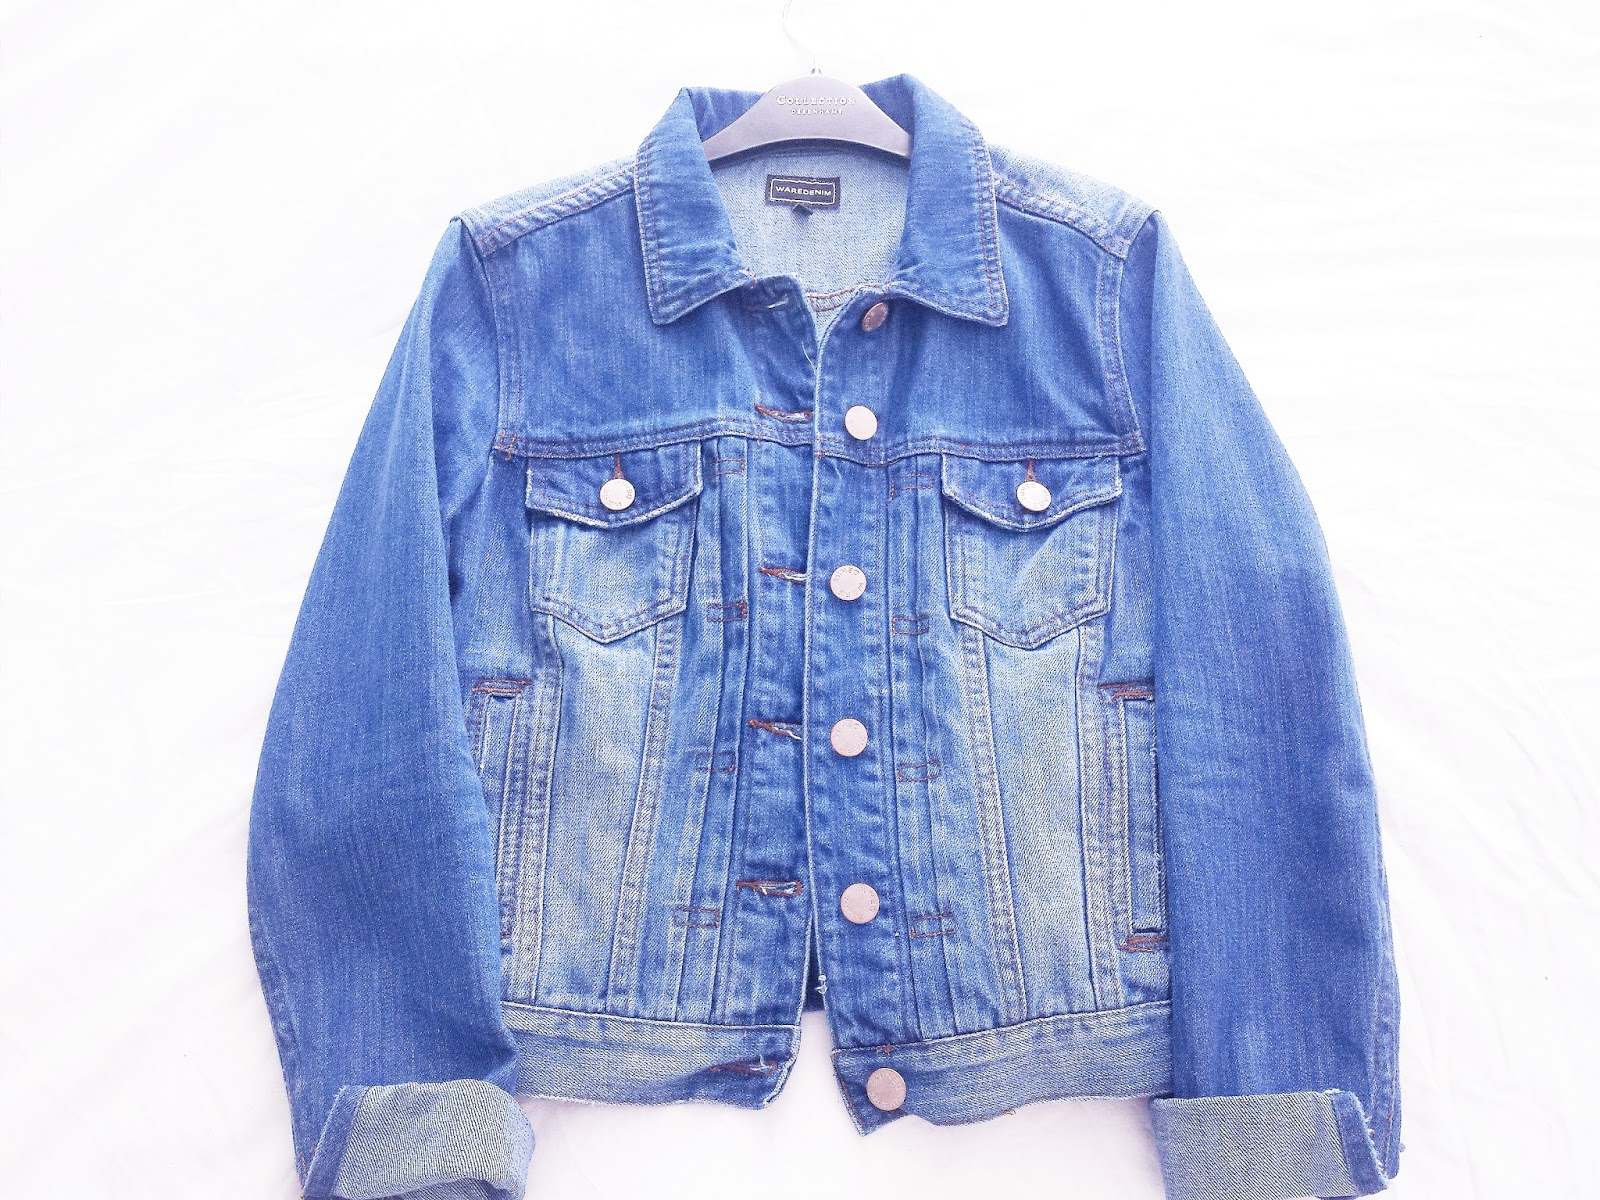 Warehouse Pleat Denim Jacket Turn Up Sleeves